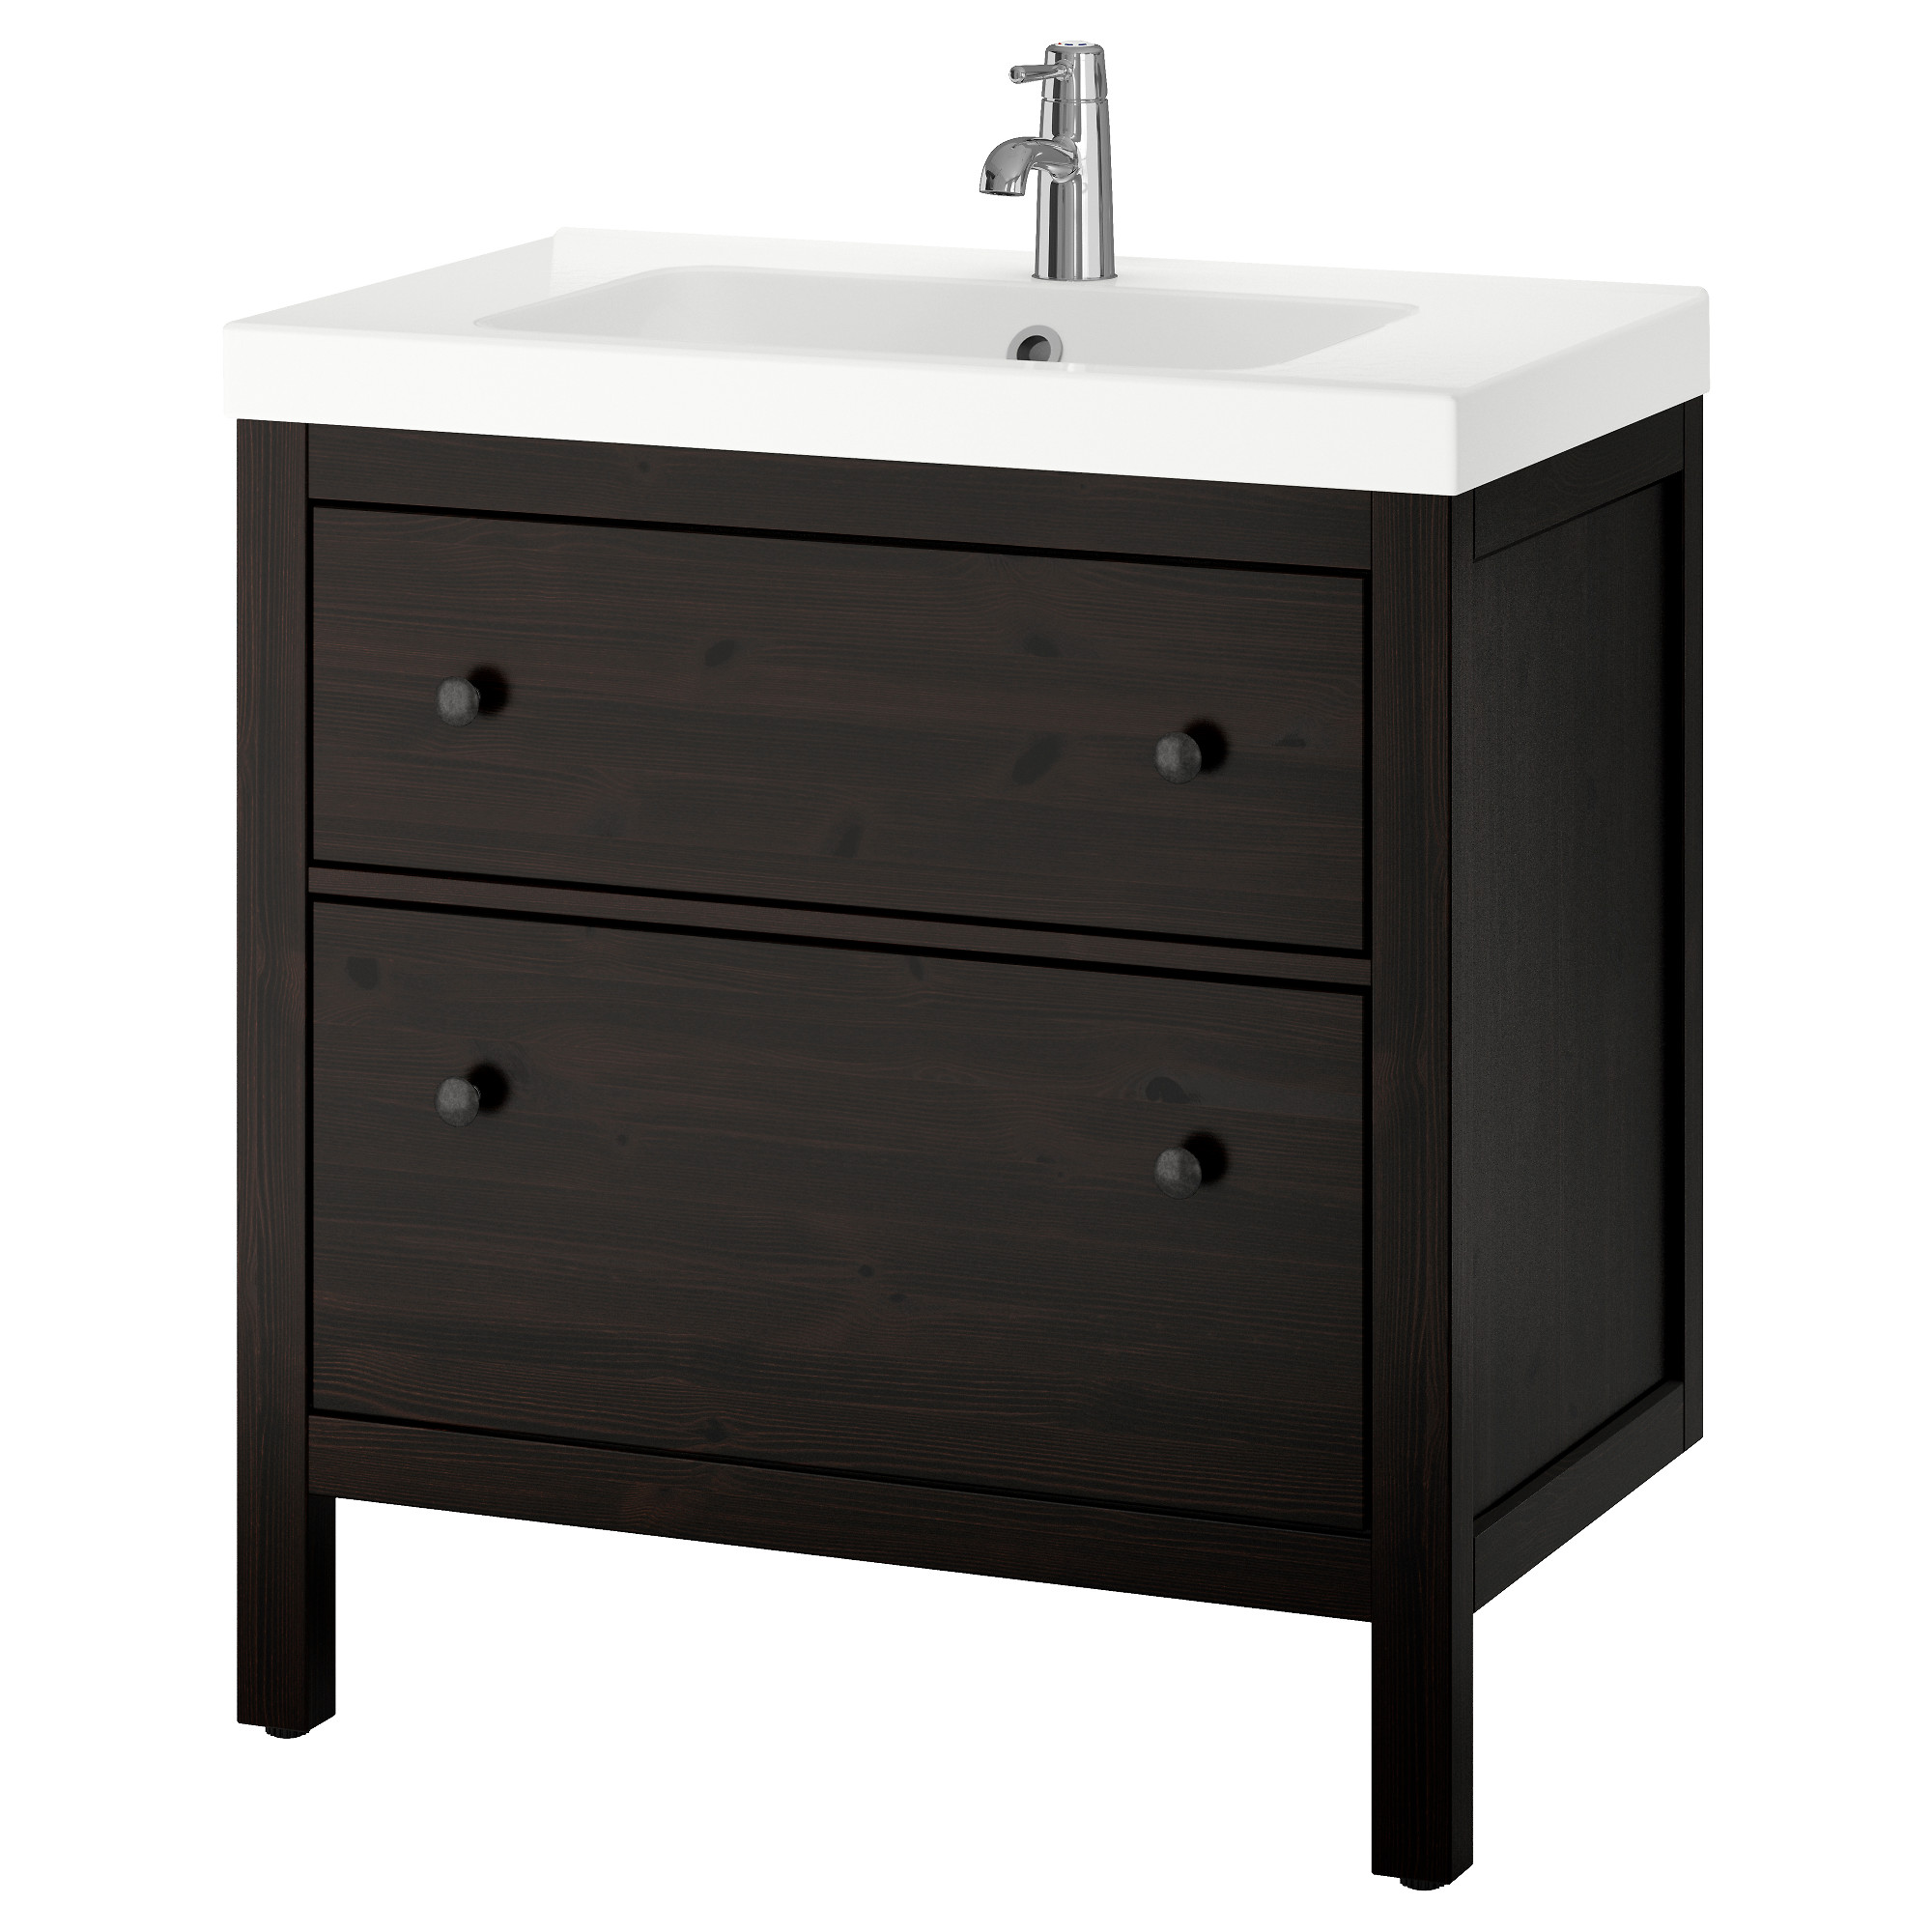 HEMNES / ODENSVIK Sink Cabinet With 2 Drawers, Black Brown Stain Width: 32